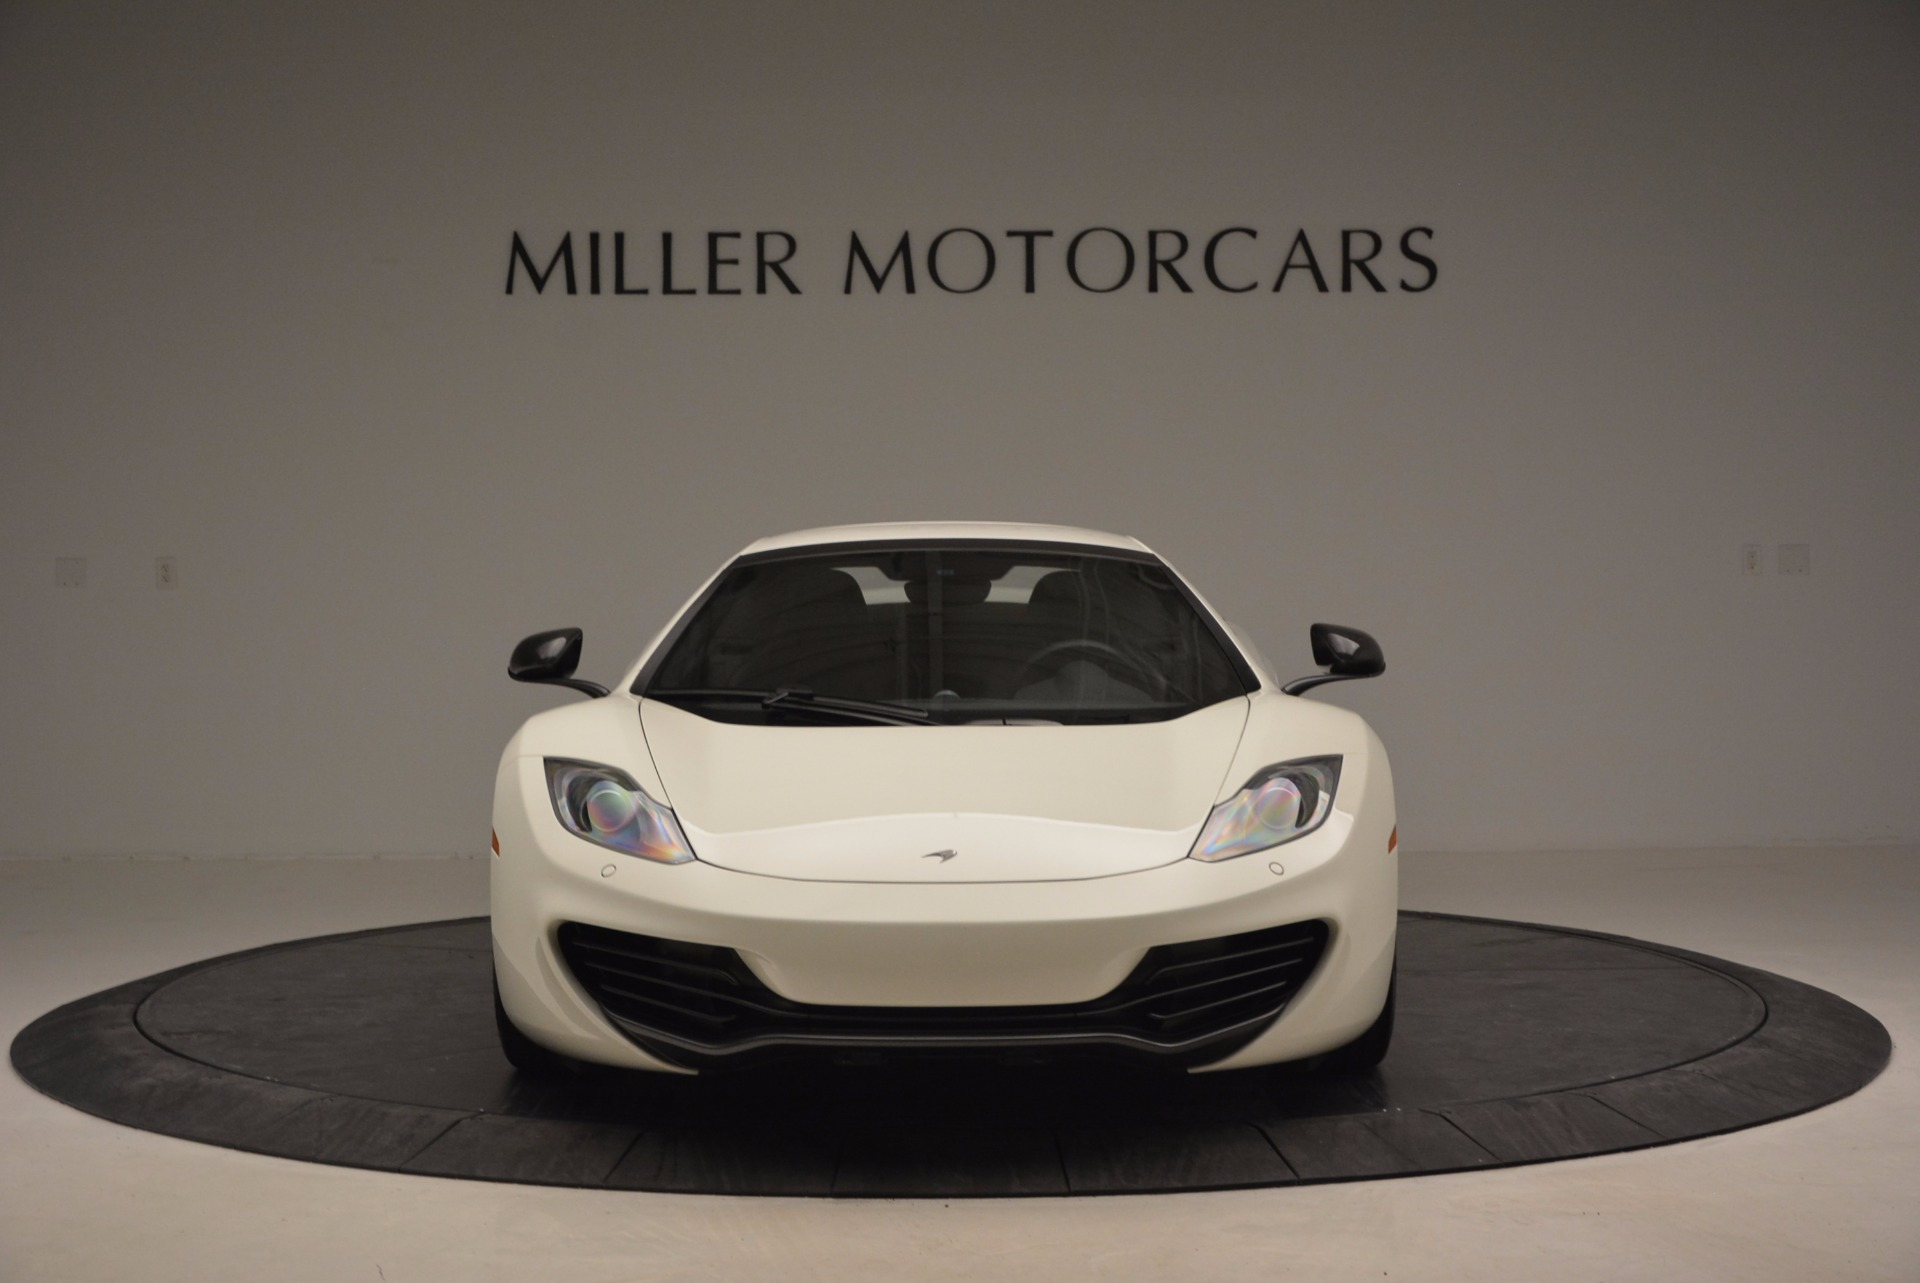 Used 2014 McLaren MP4-12C Spider For Sale In Greenwich, CT. Alfa Romeo of Greenwich, 3136 908_p13